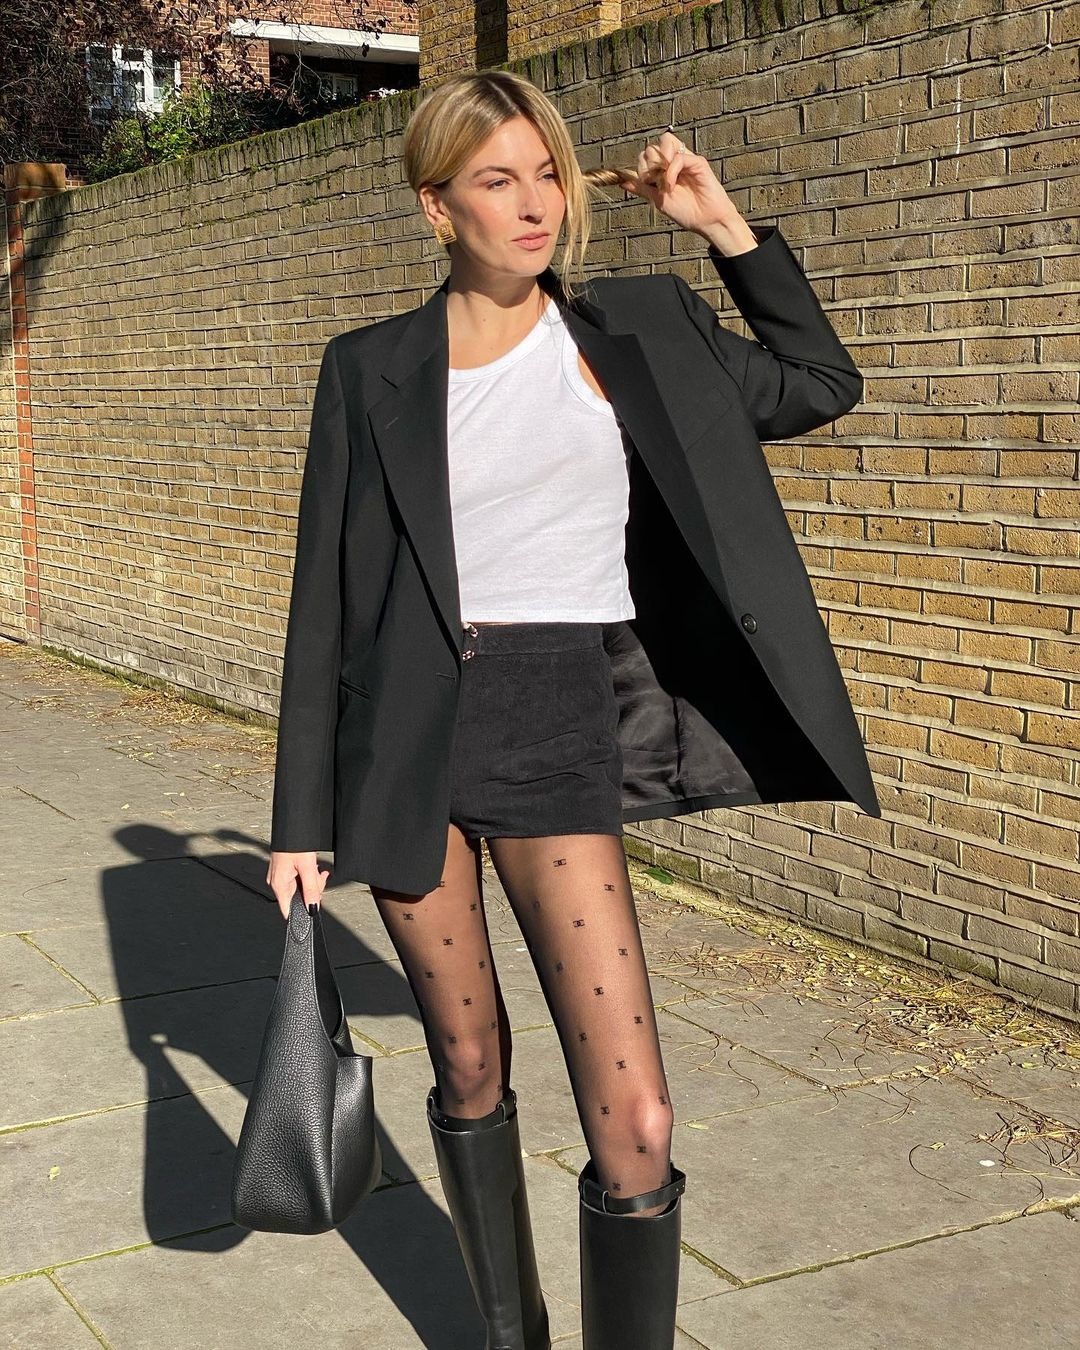 camille-charriere-chanel-logo-tights-fall-look-instagram